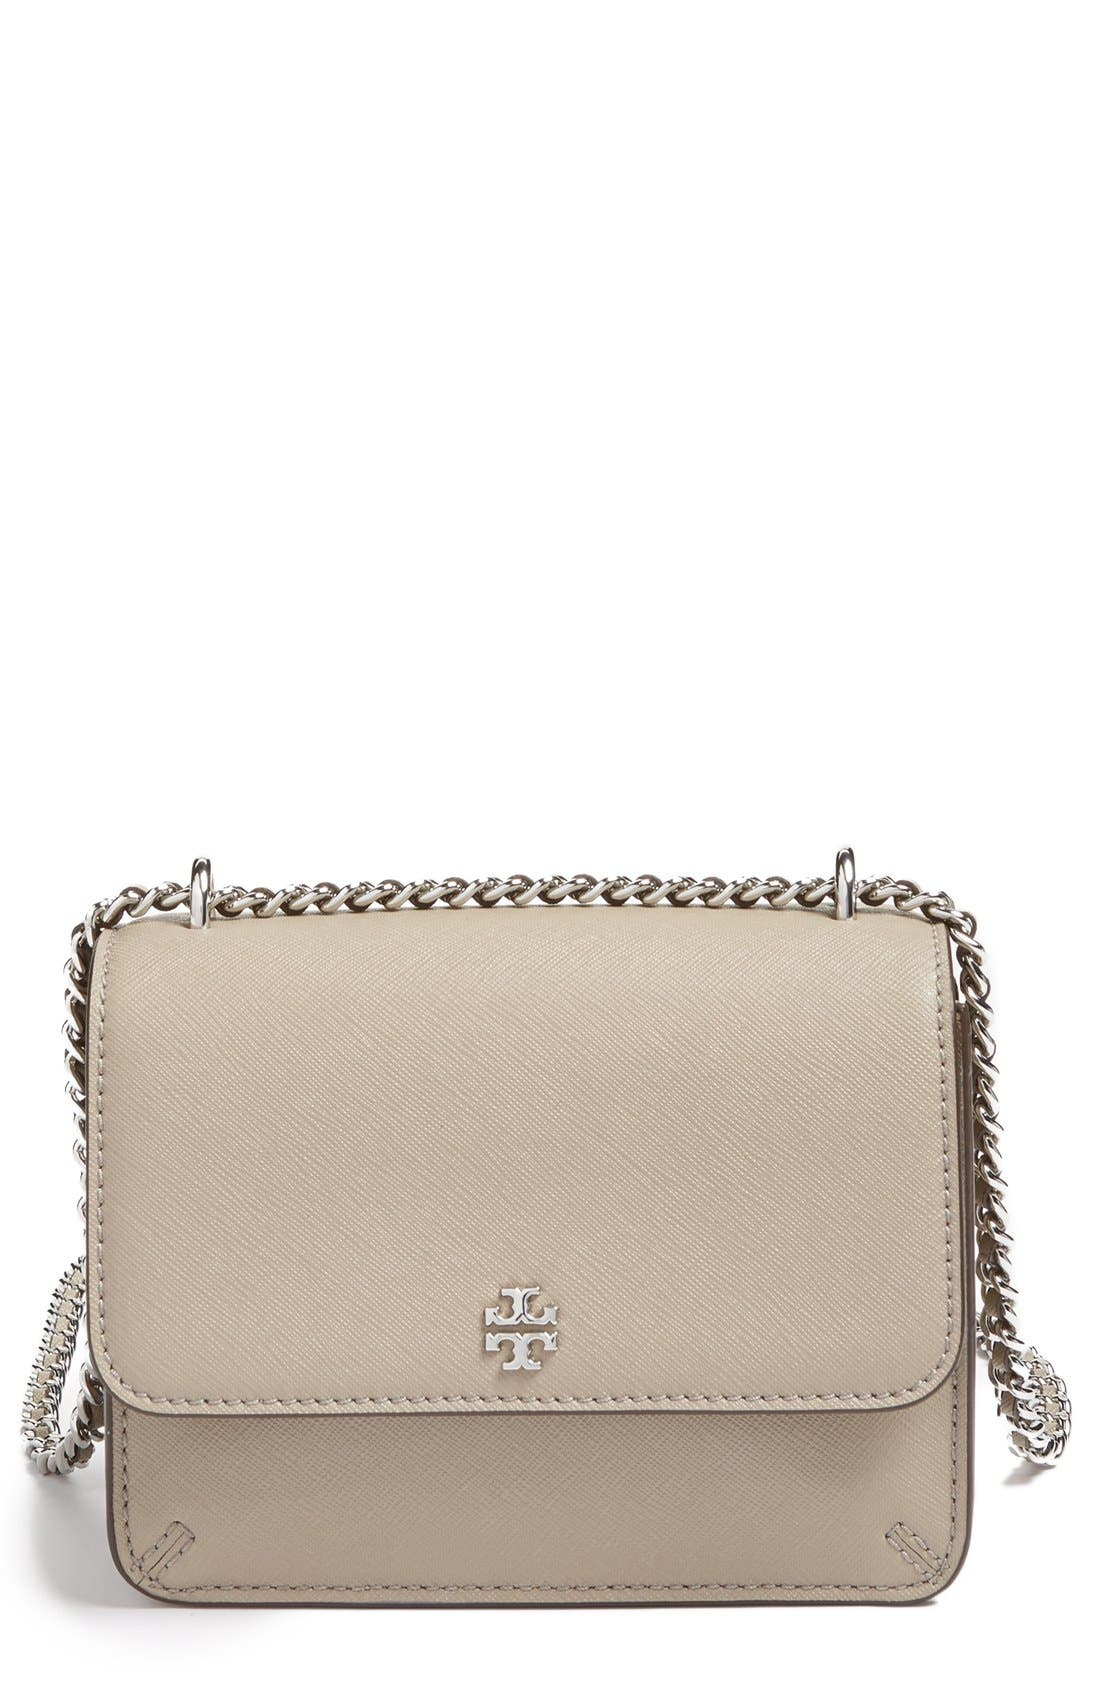 Main Image - Tory Burch Mini Robinson Convertible Leather Shoulder Bag